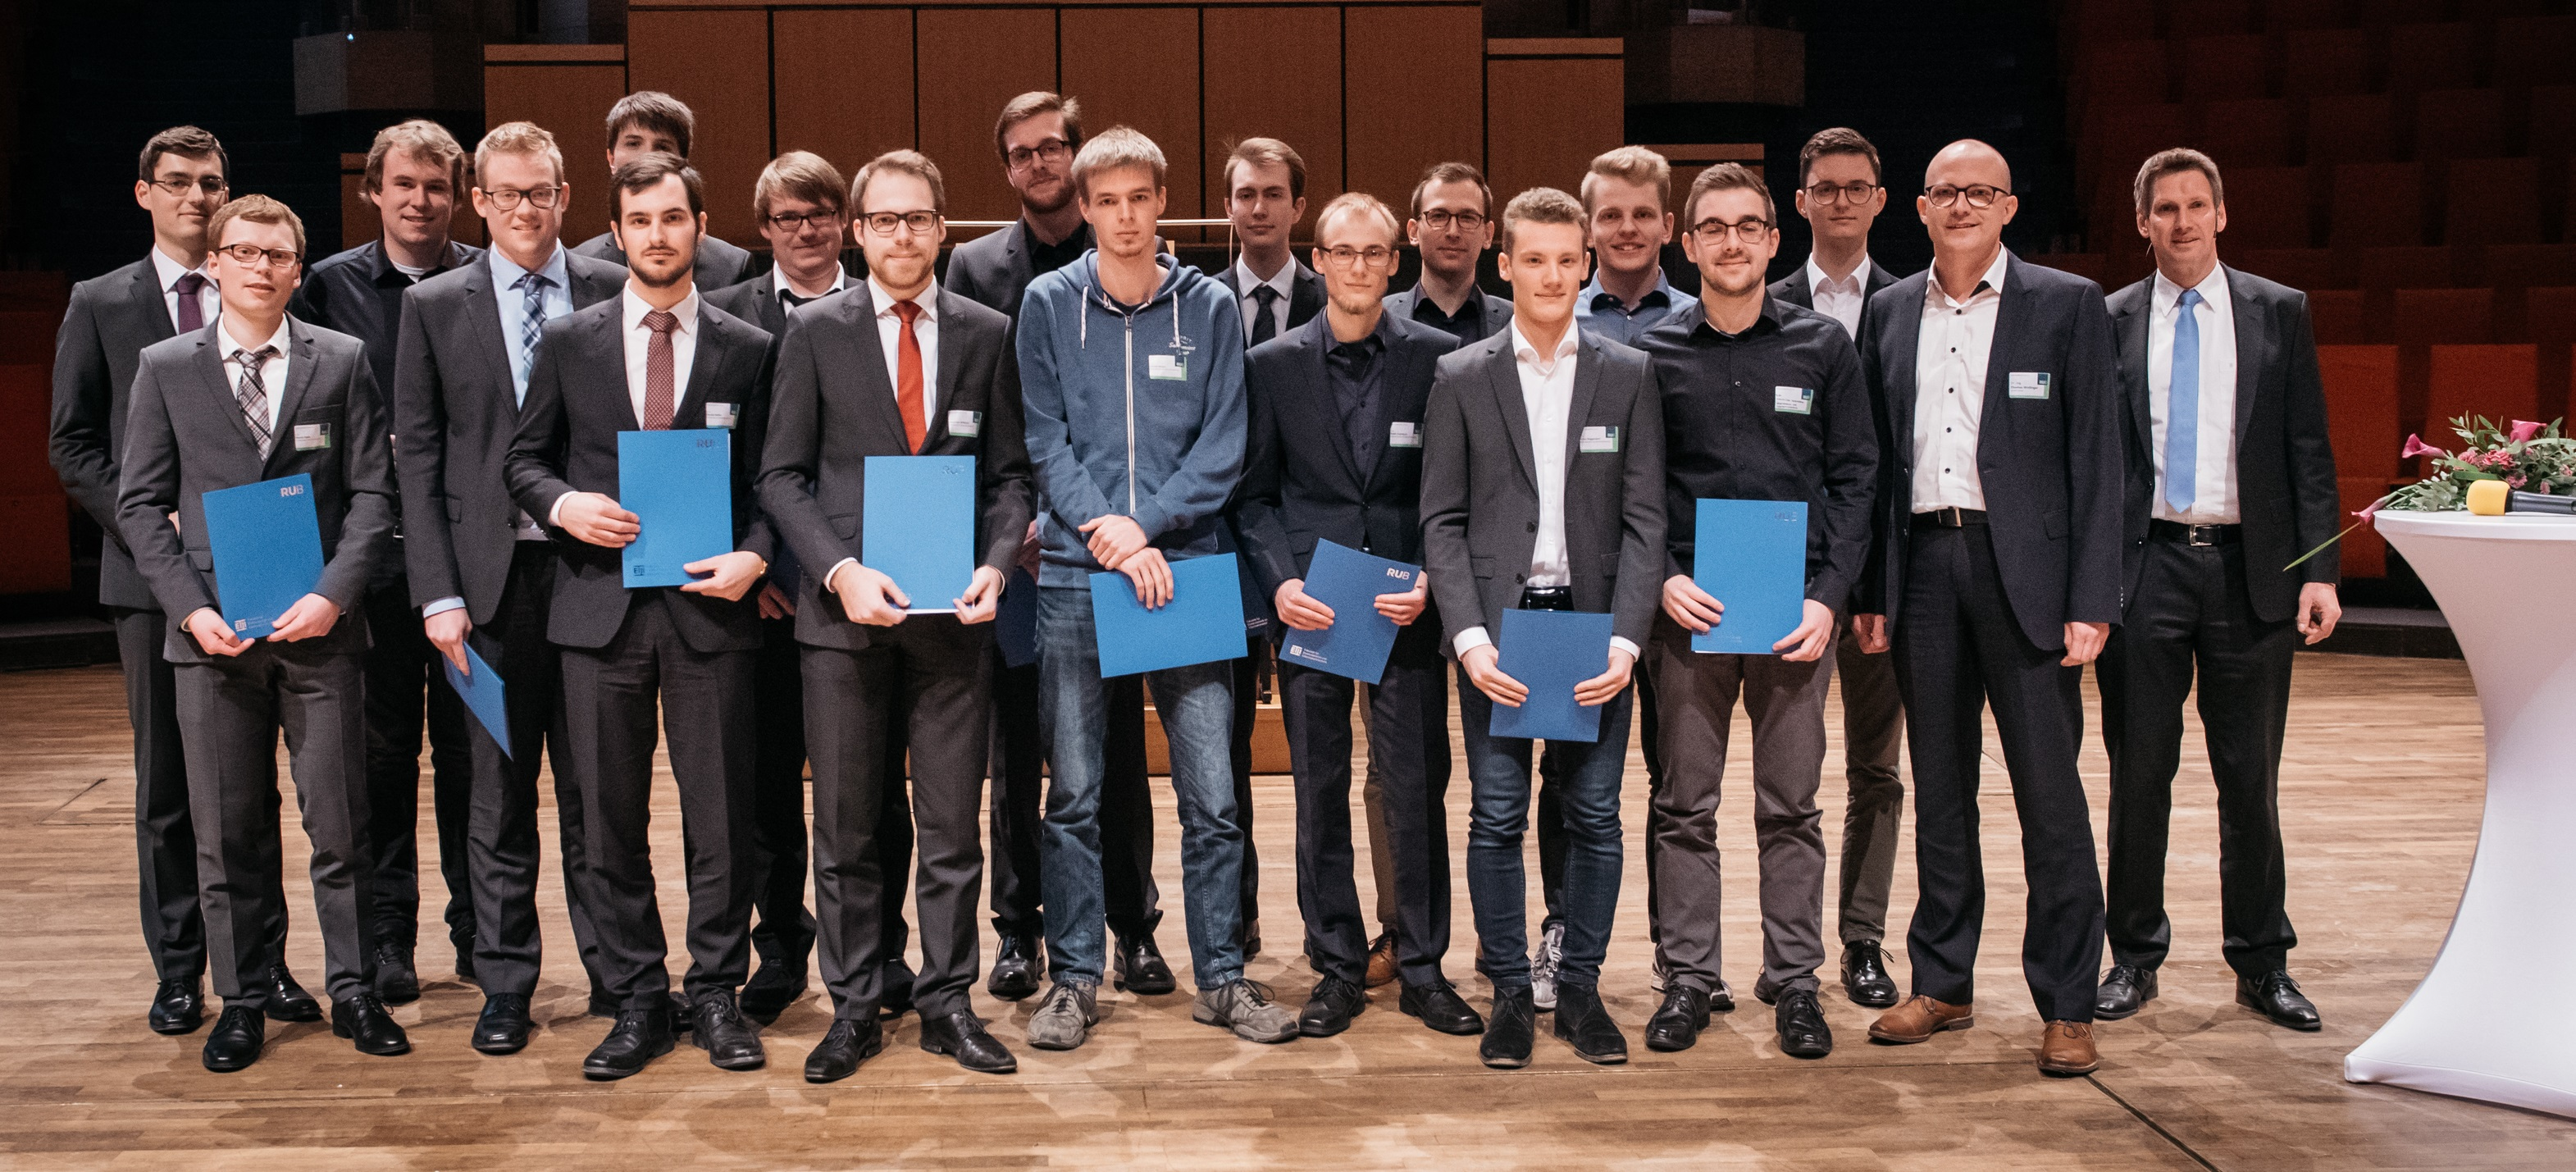 Winners of the ESCRYPT Young Talent Award 2019 at Ruhr-Universität Bochum